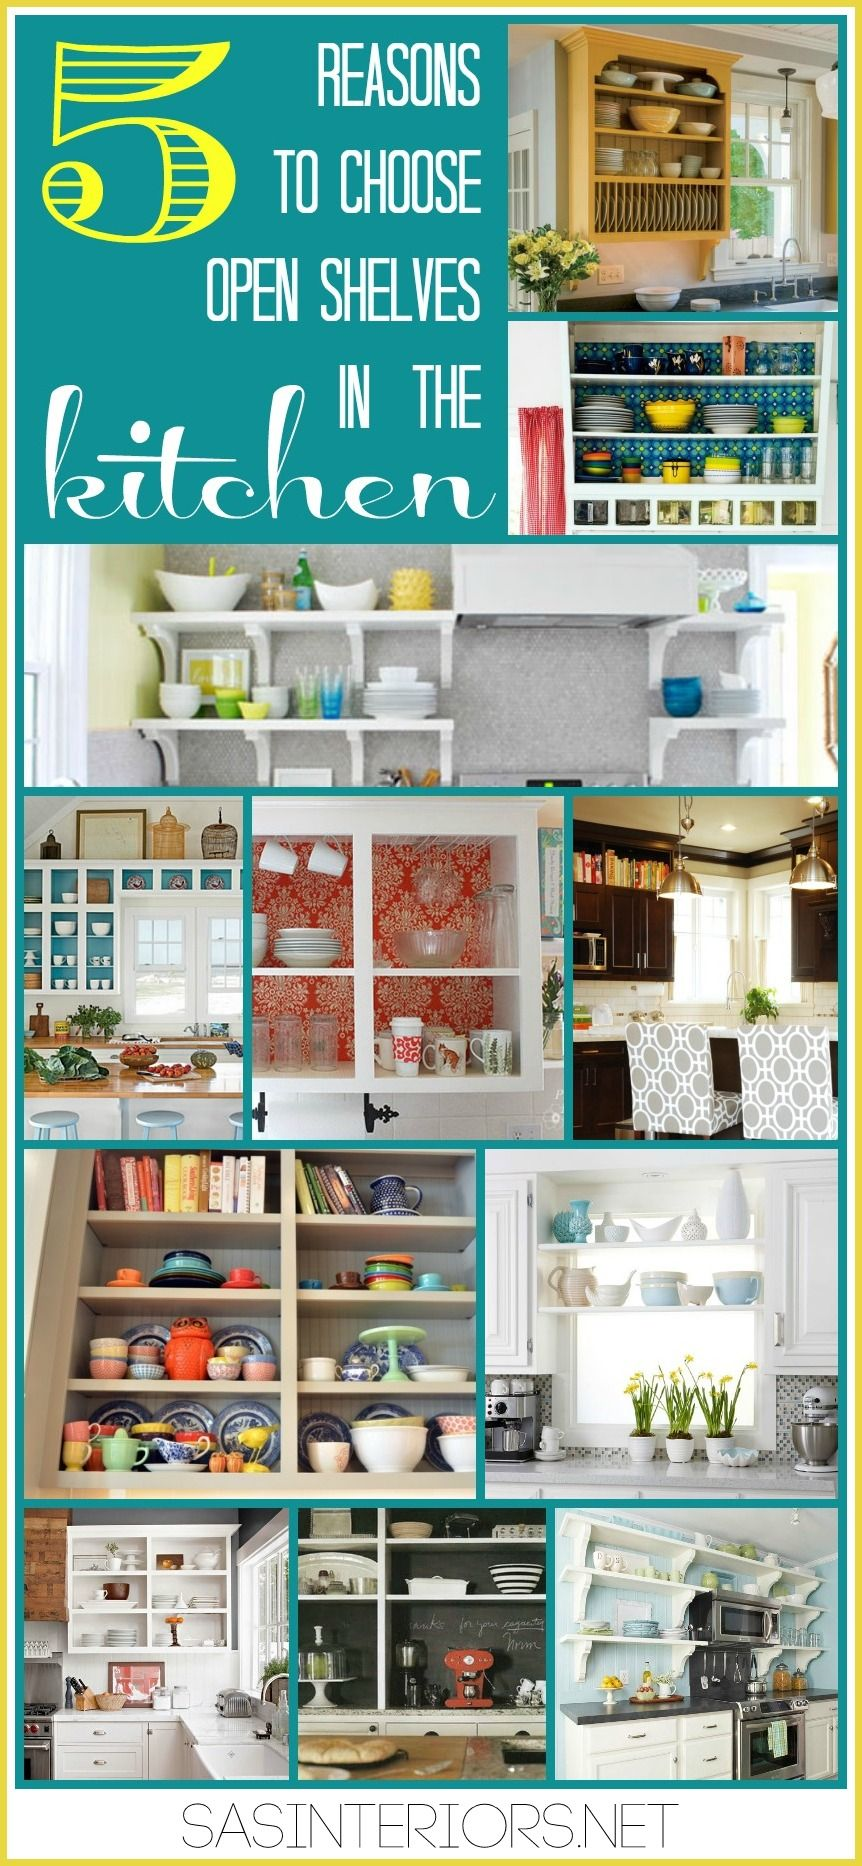 reasons to choose open shelves in the kitchen showcasing examples